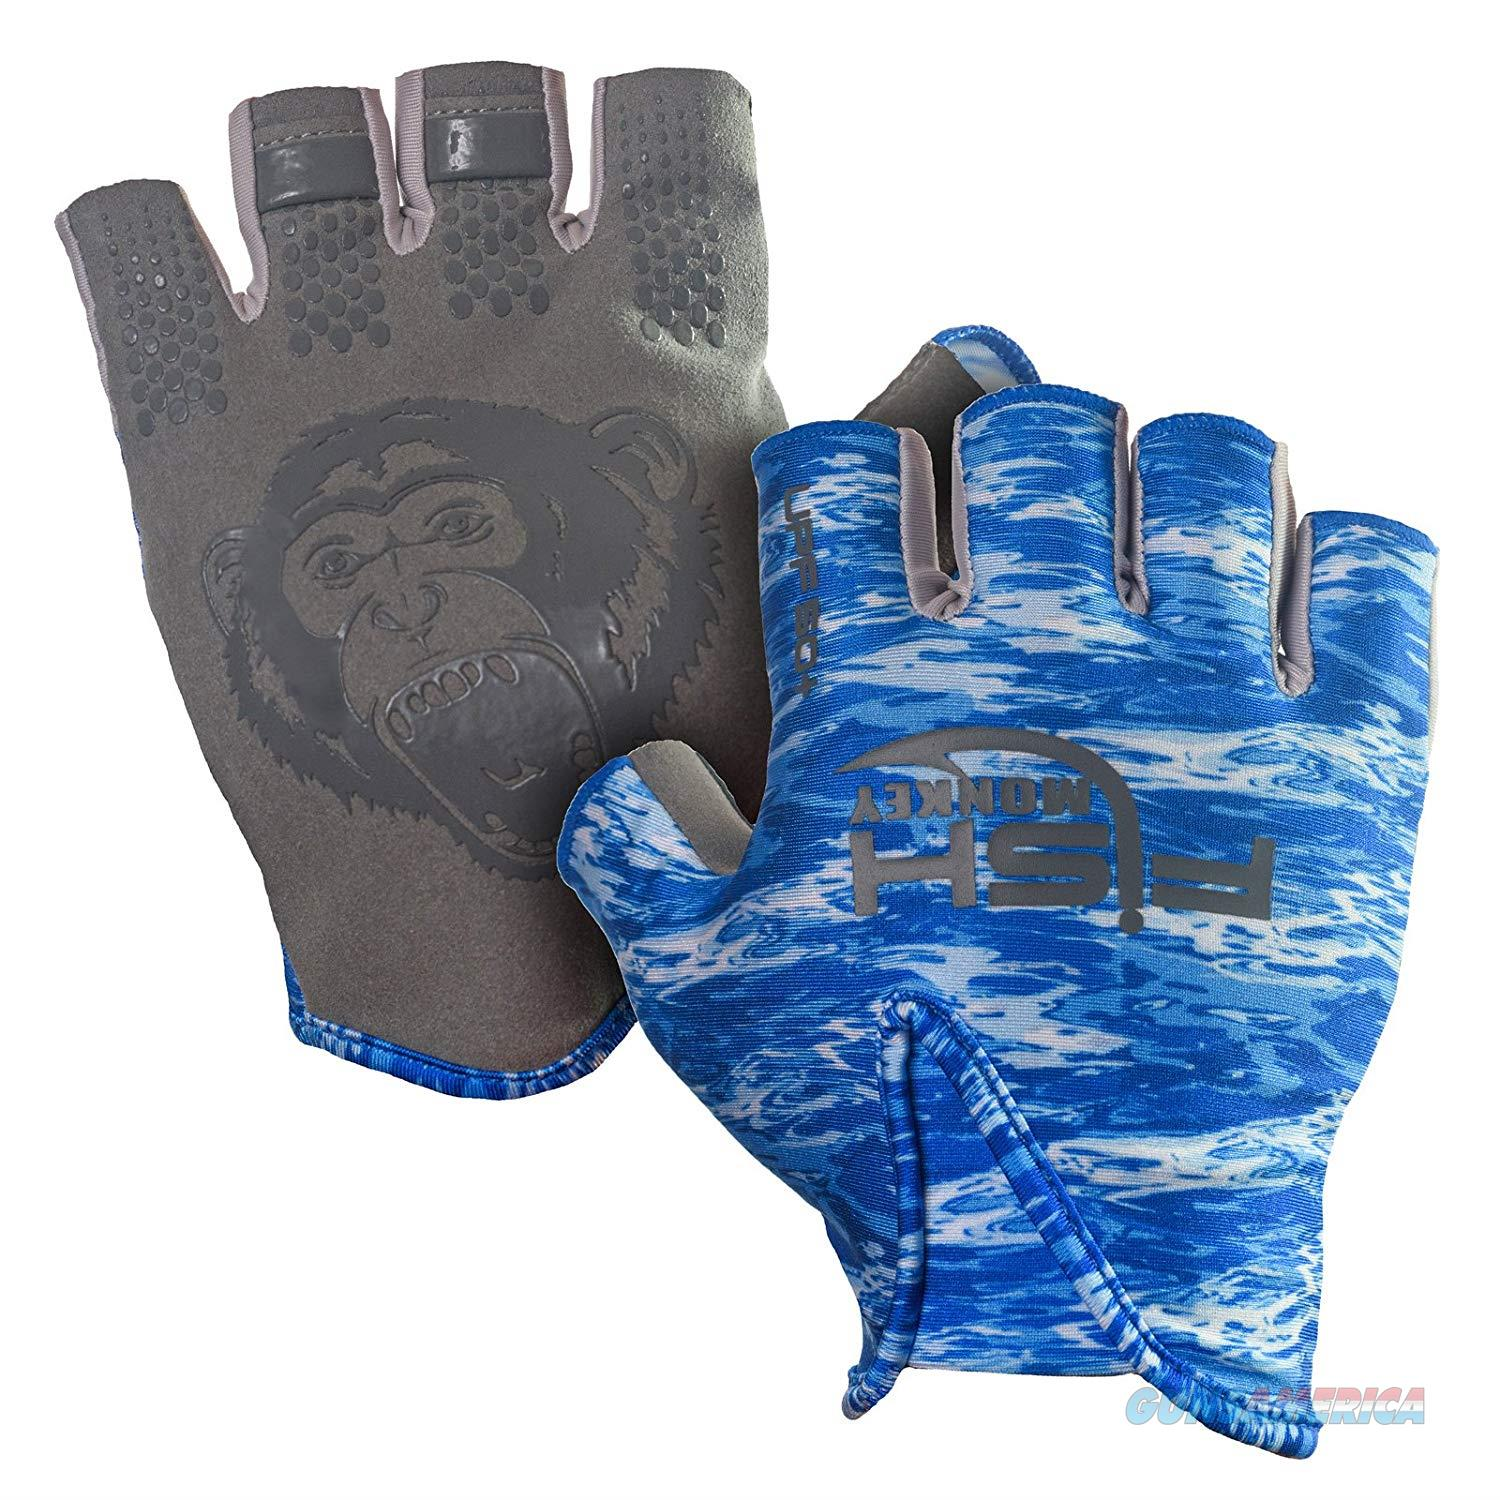 Fish Monkey Stubby Guide Glove Blue LG  Non-Guns > Hunting Clothing and Equipment > Clothing > Gloves